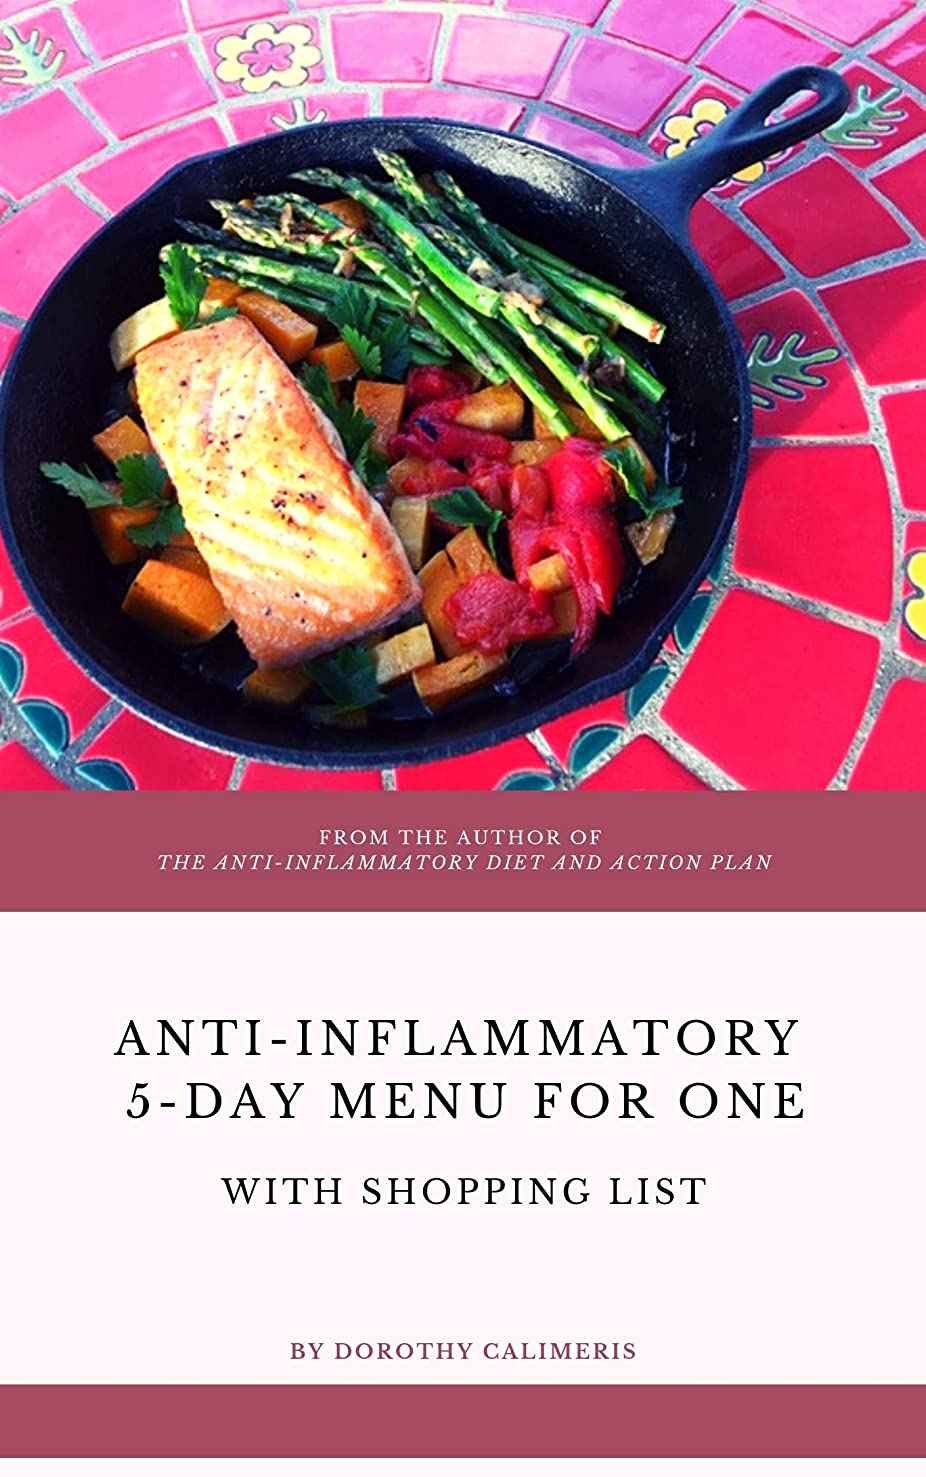 5 Day Anti-Inflammatory Menu for One: With Shopping List (English Edition)